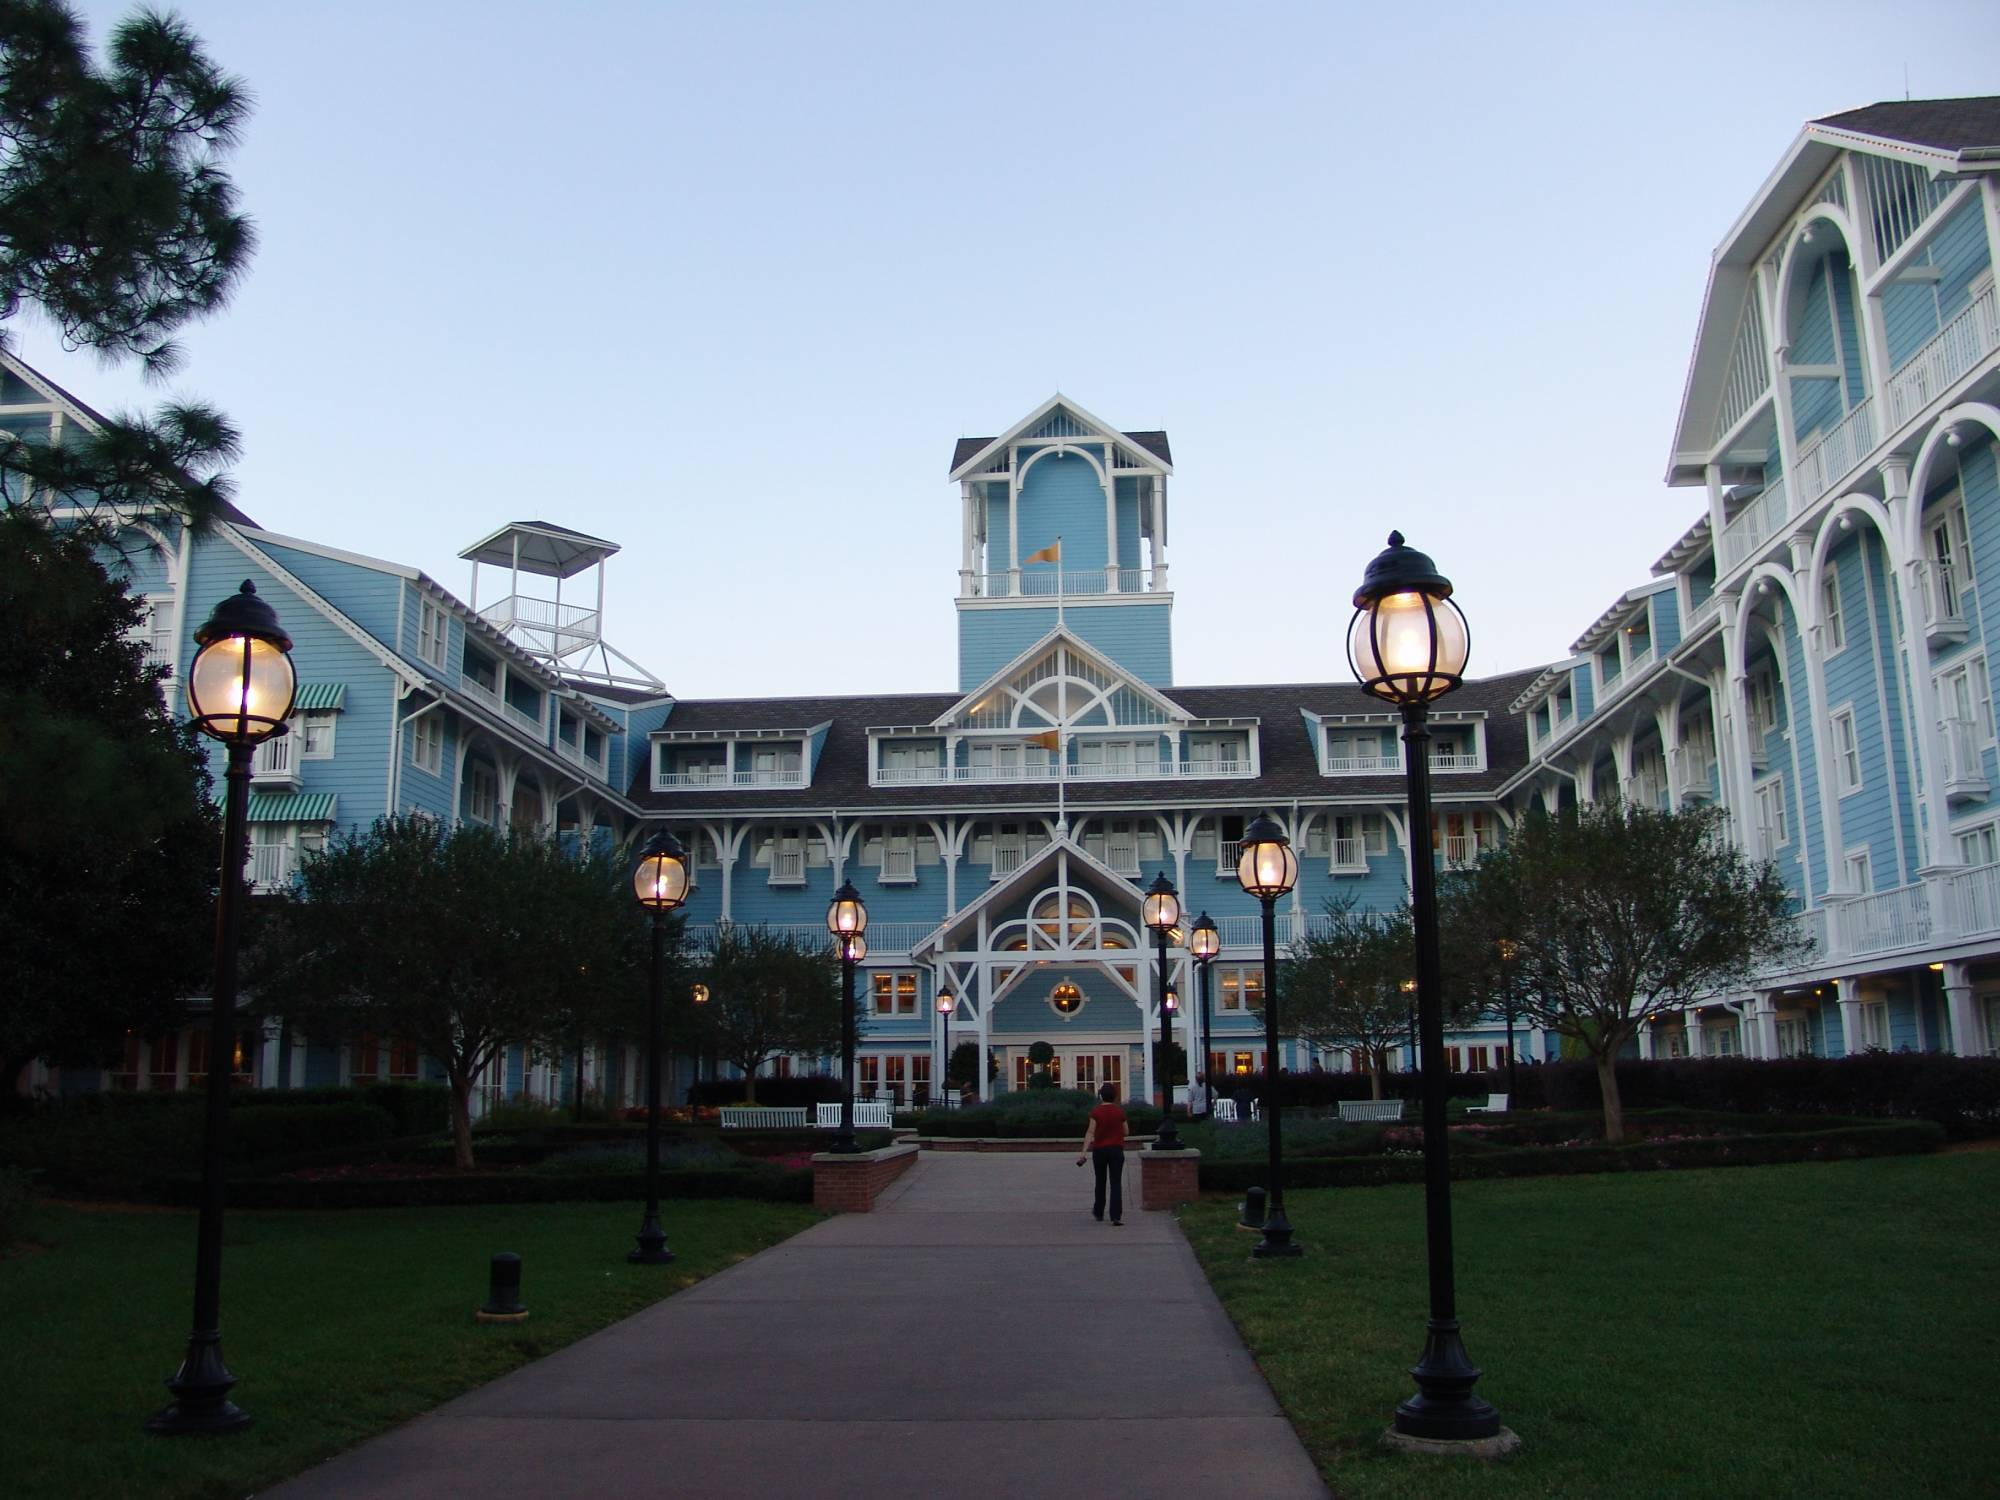 Explore the Shades of Green Resort at Walt Disney World with tips |PassPorter.com